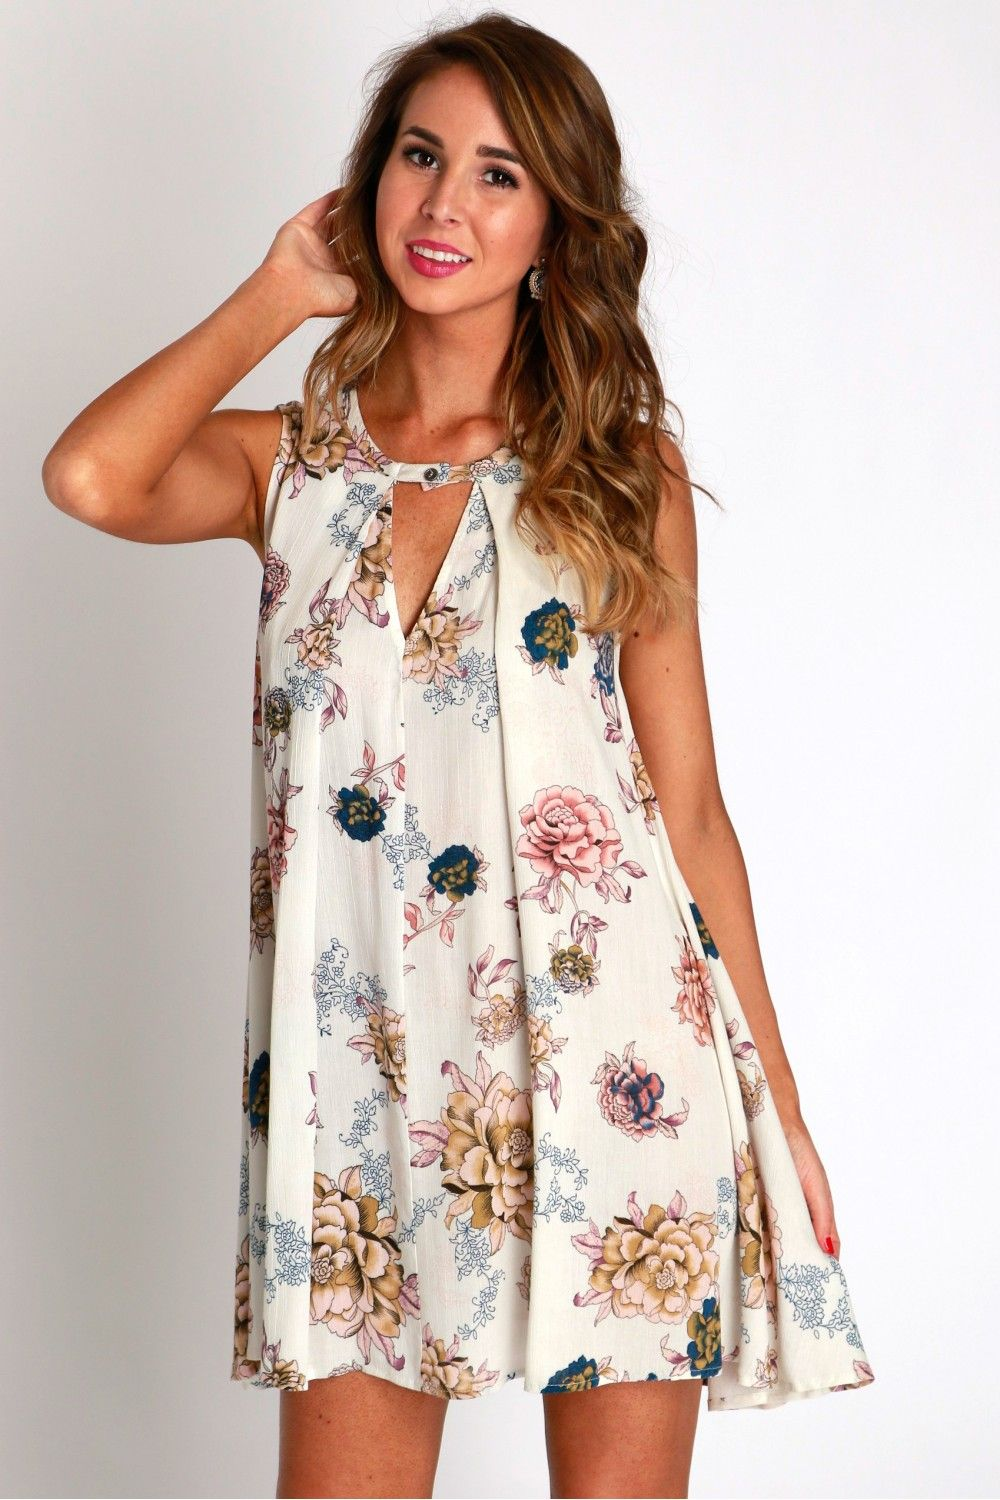 Fleur De Printemps Cutout Dress $34.99